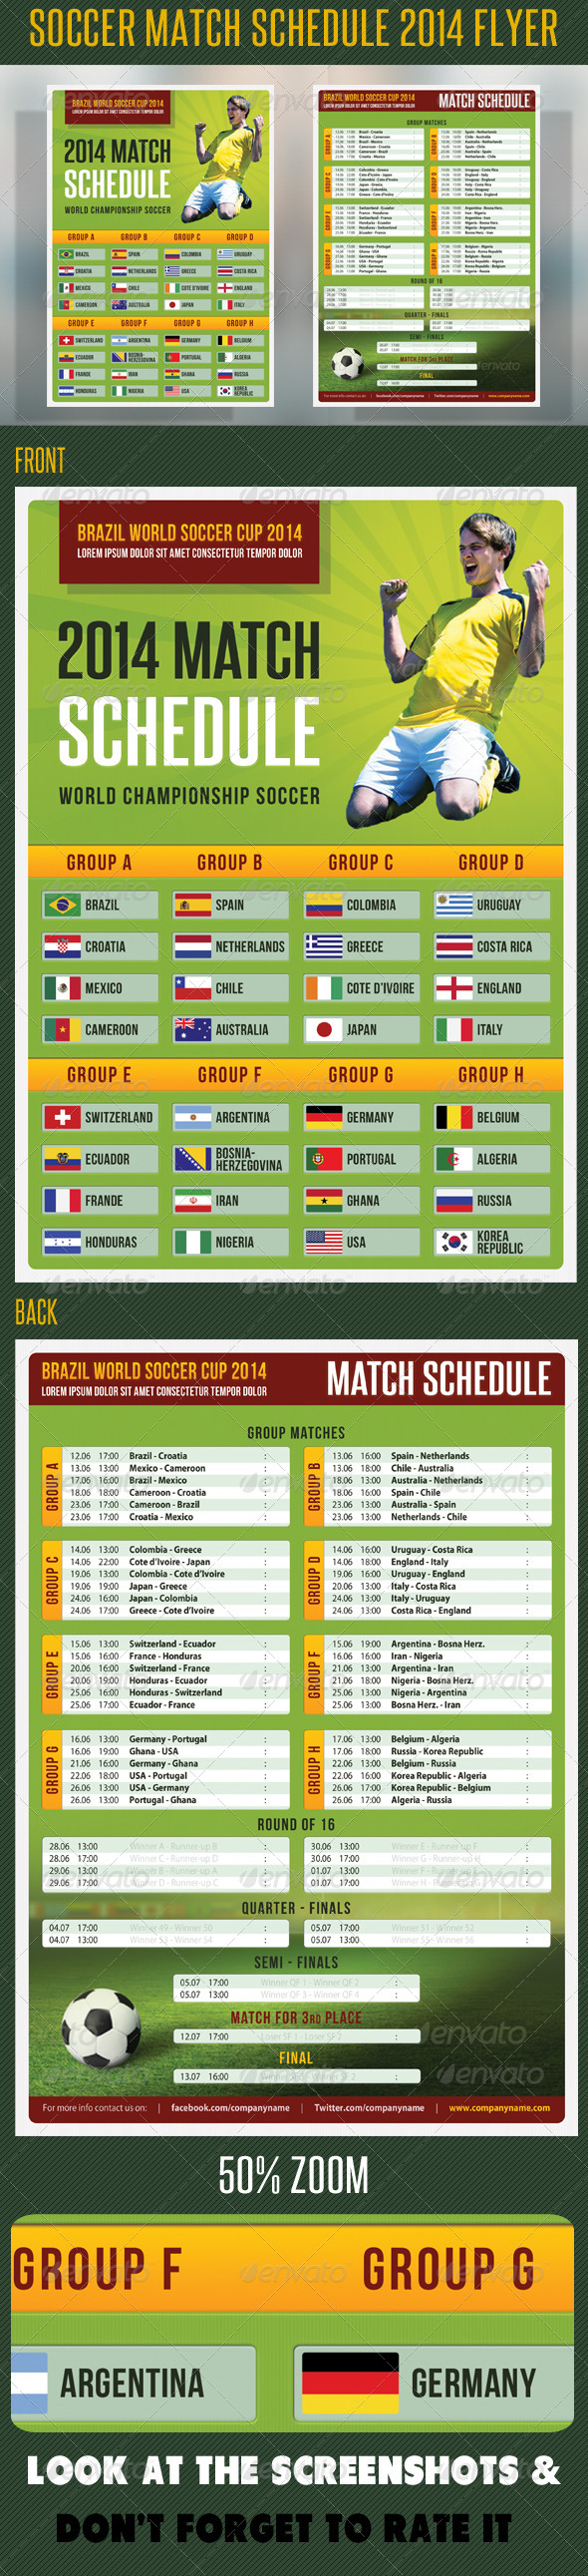 GraphicRiver Soccer Match Schedule 2014 Flyer 7725914